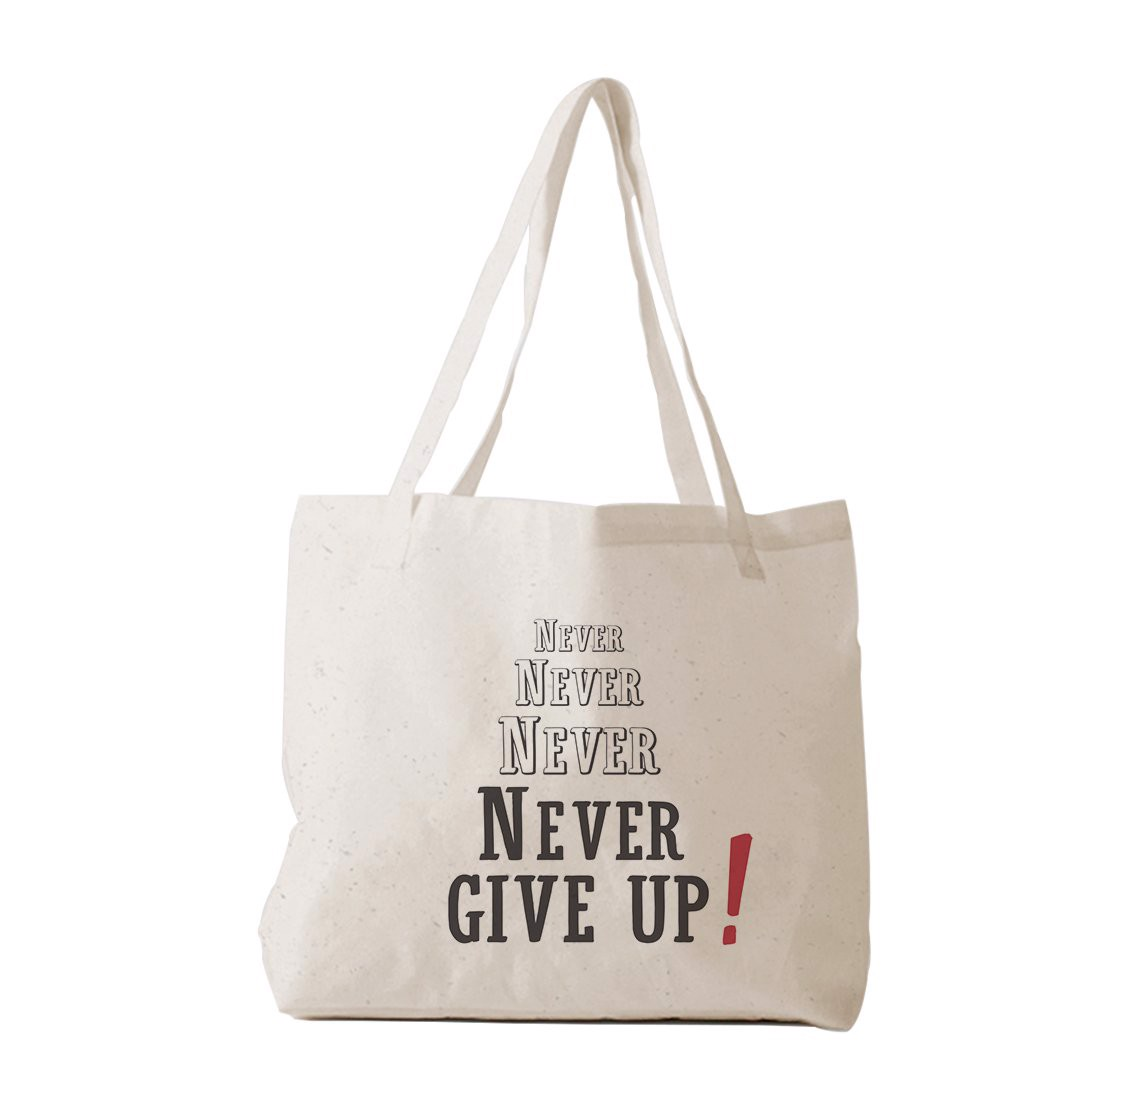 Tote Bag - Never give up